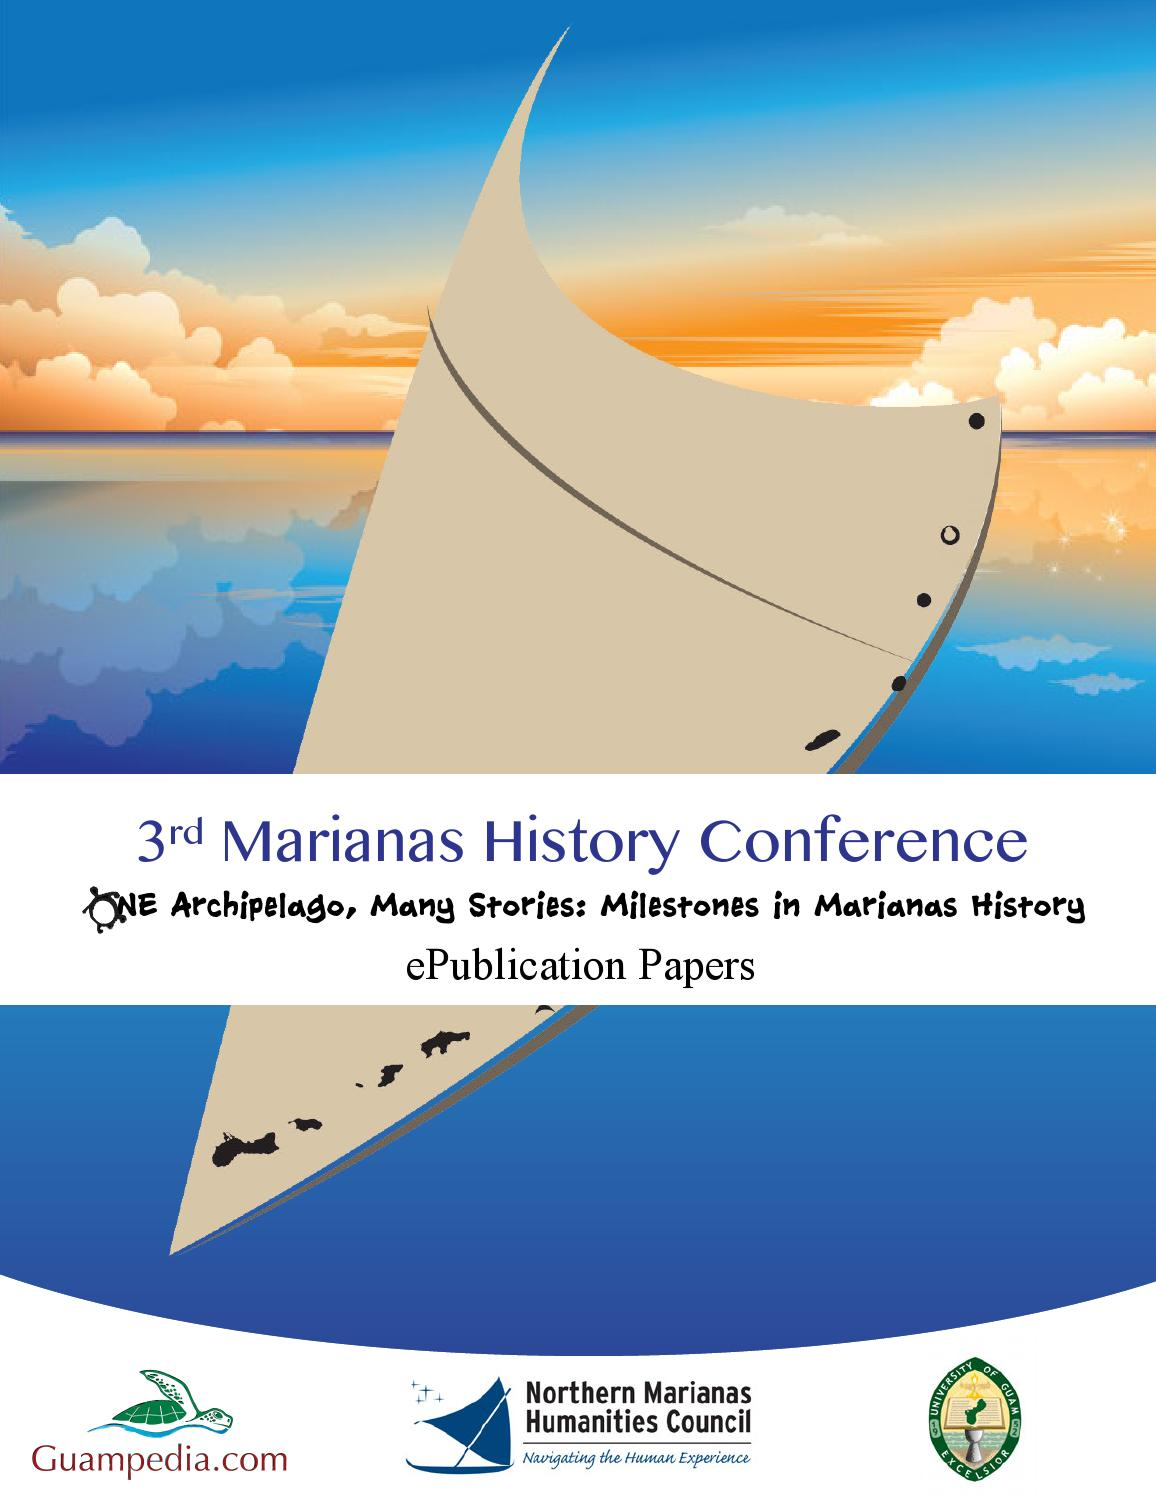 20th century pacific world essay Defining the chinese self in the 20th century - conference volume bochum:   jie lu, university of the pacific, stockton, usa  from historical narrative to the  world of prose: the essayistic mode in contemporary chinese literature, prof.